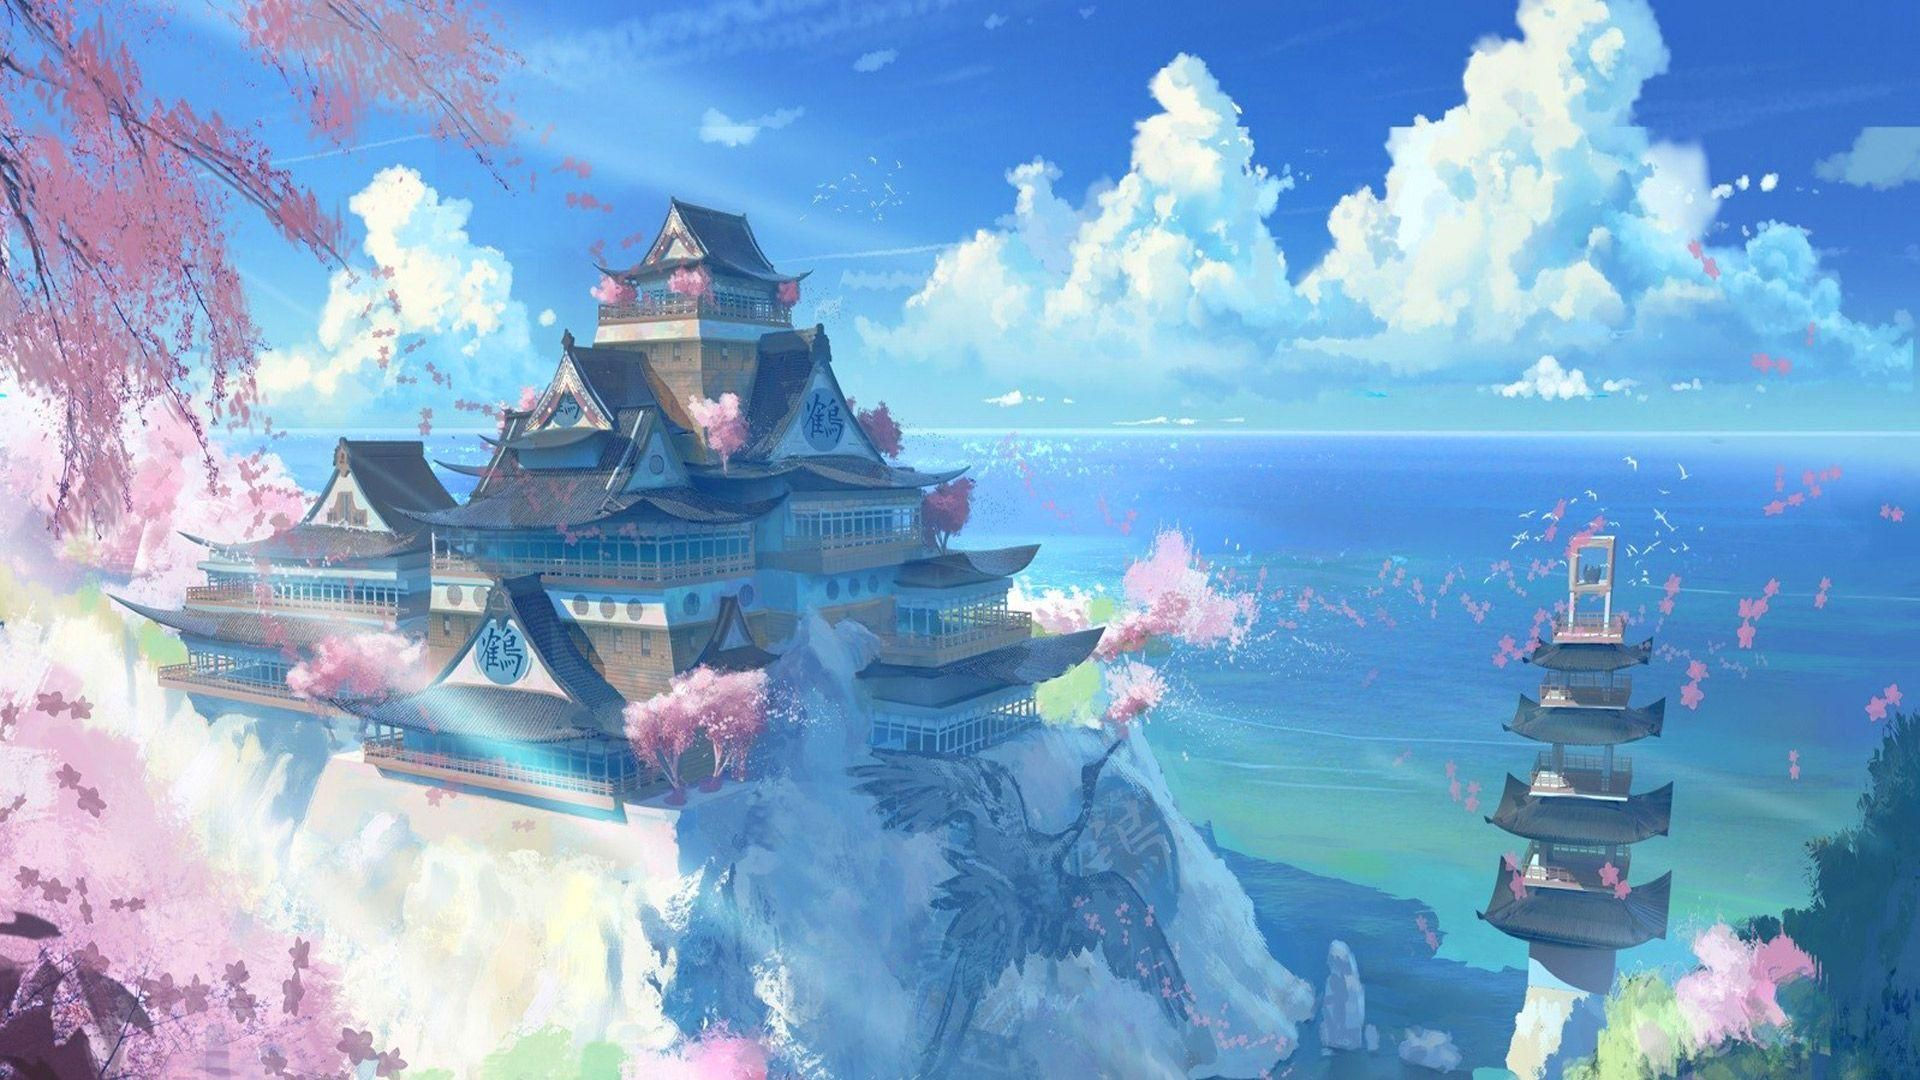 Pin By Arely Delaluz On Anime Background Computer Wallpaper Desktop Wallpapers Desktop Wallpaper Art Anime Scenery Wallpaper